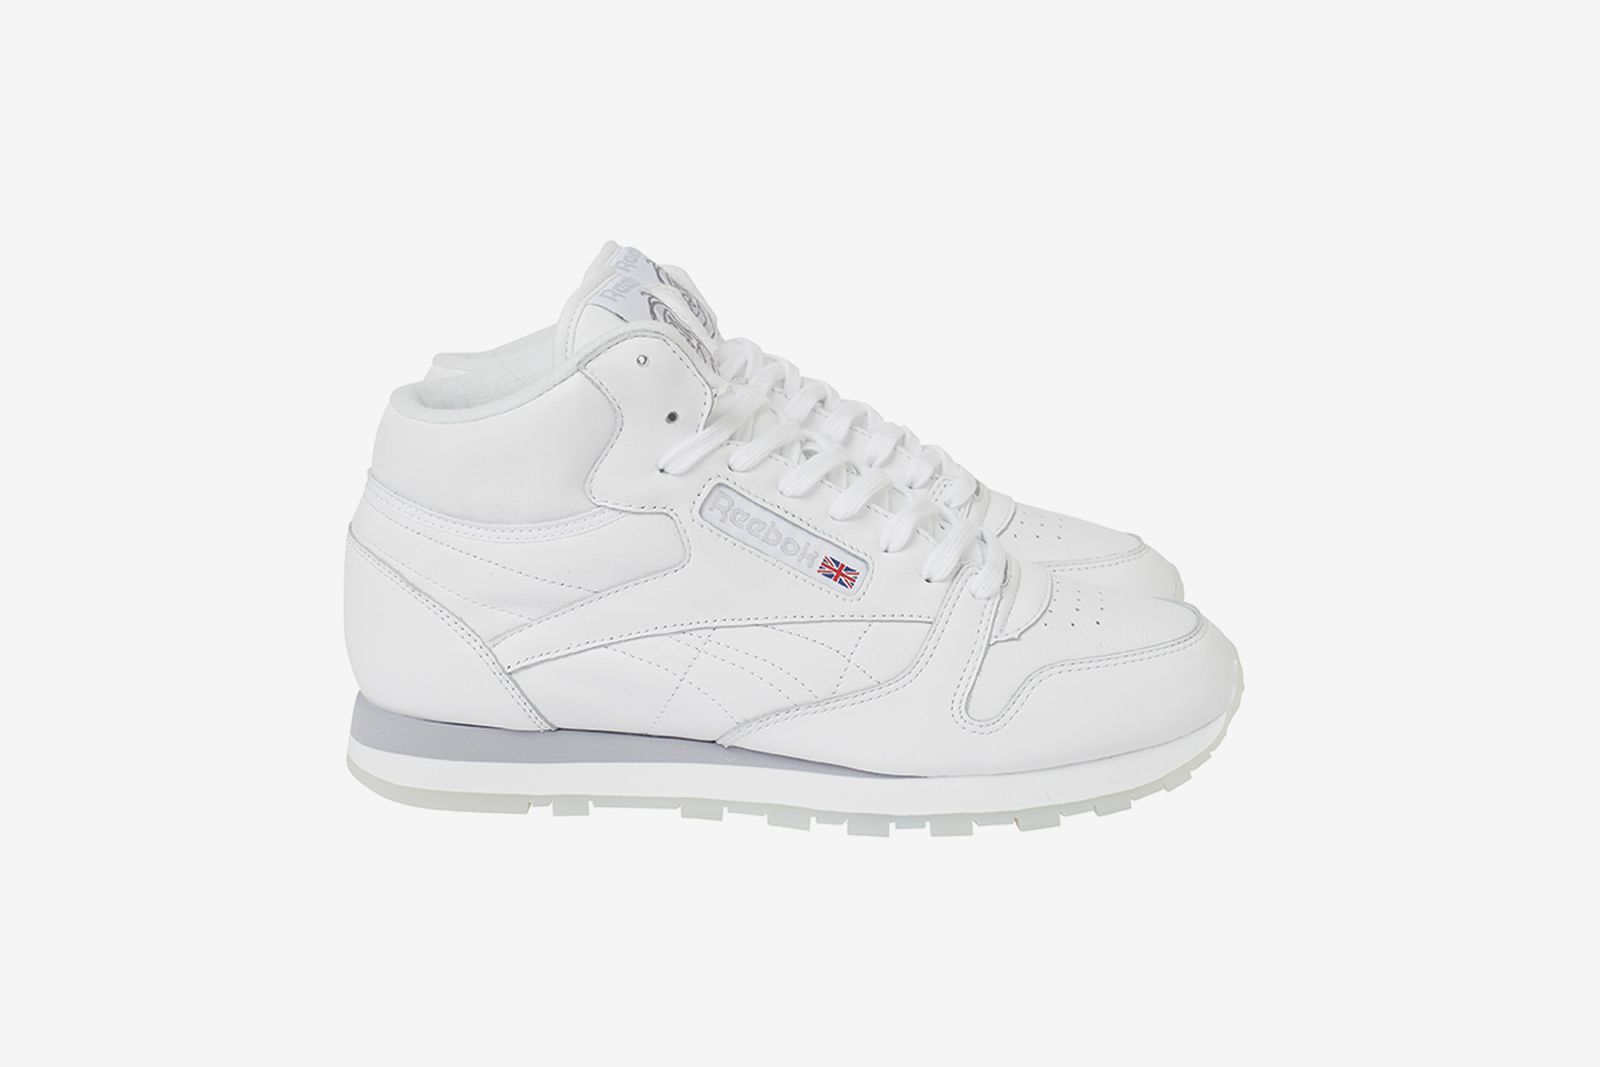 Palace x Reebok JK Workout Mid white